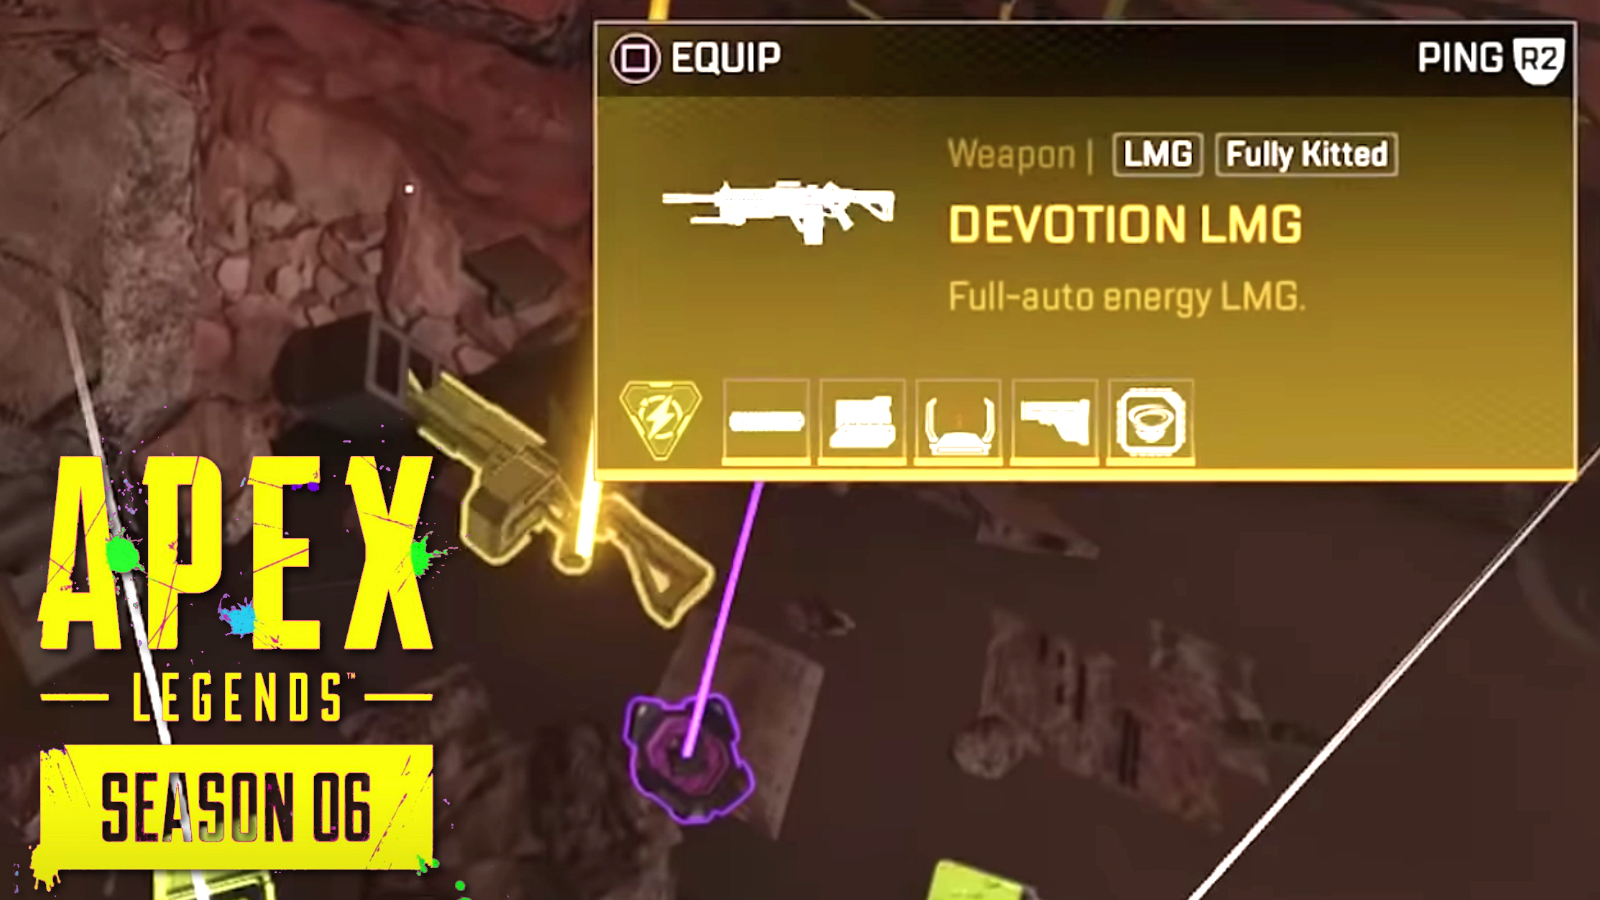 A gold devotion LMG in Apex Legends